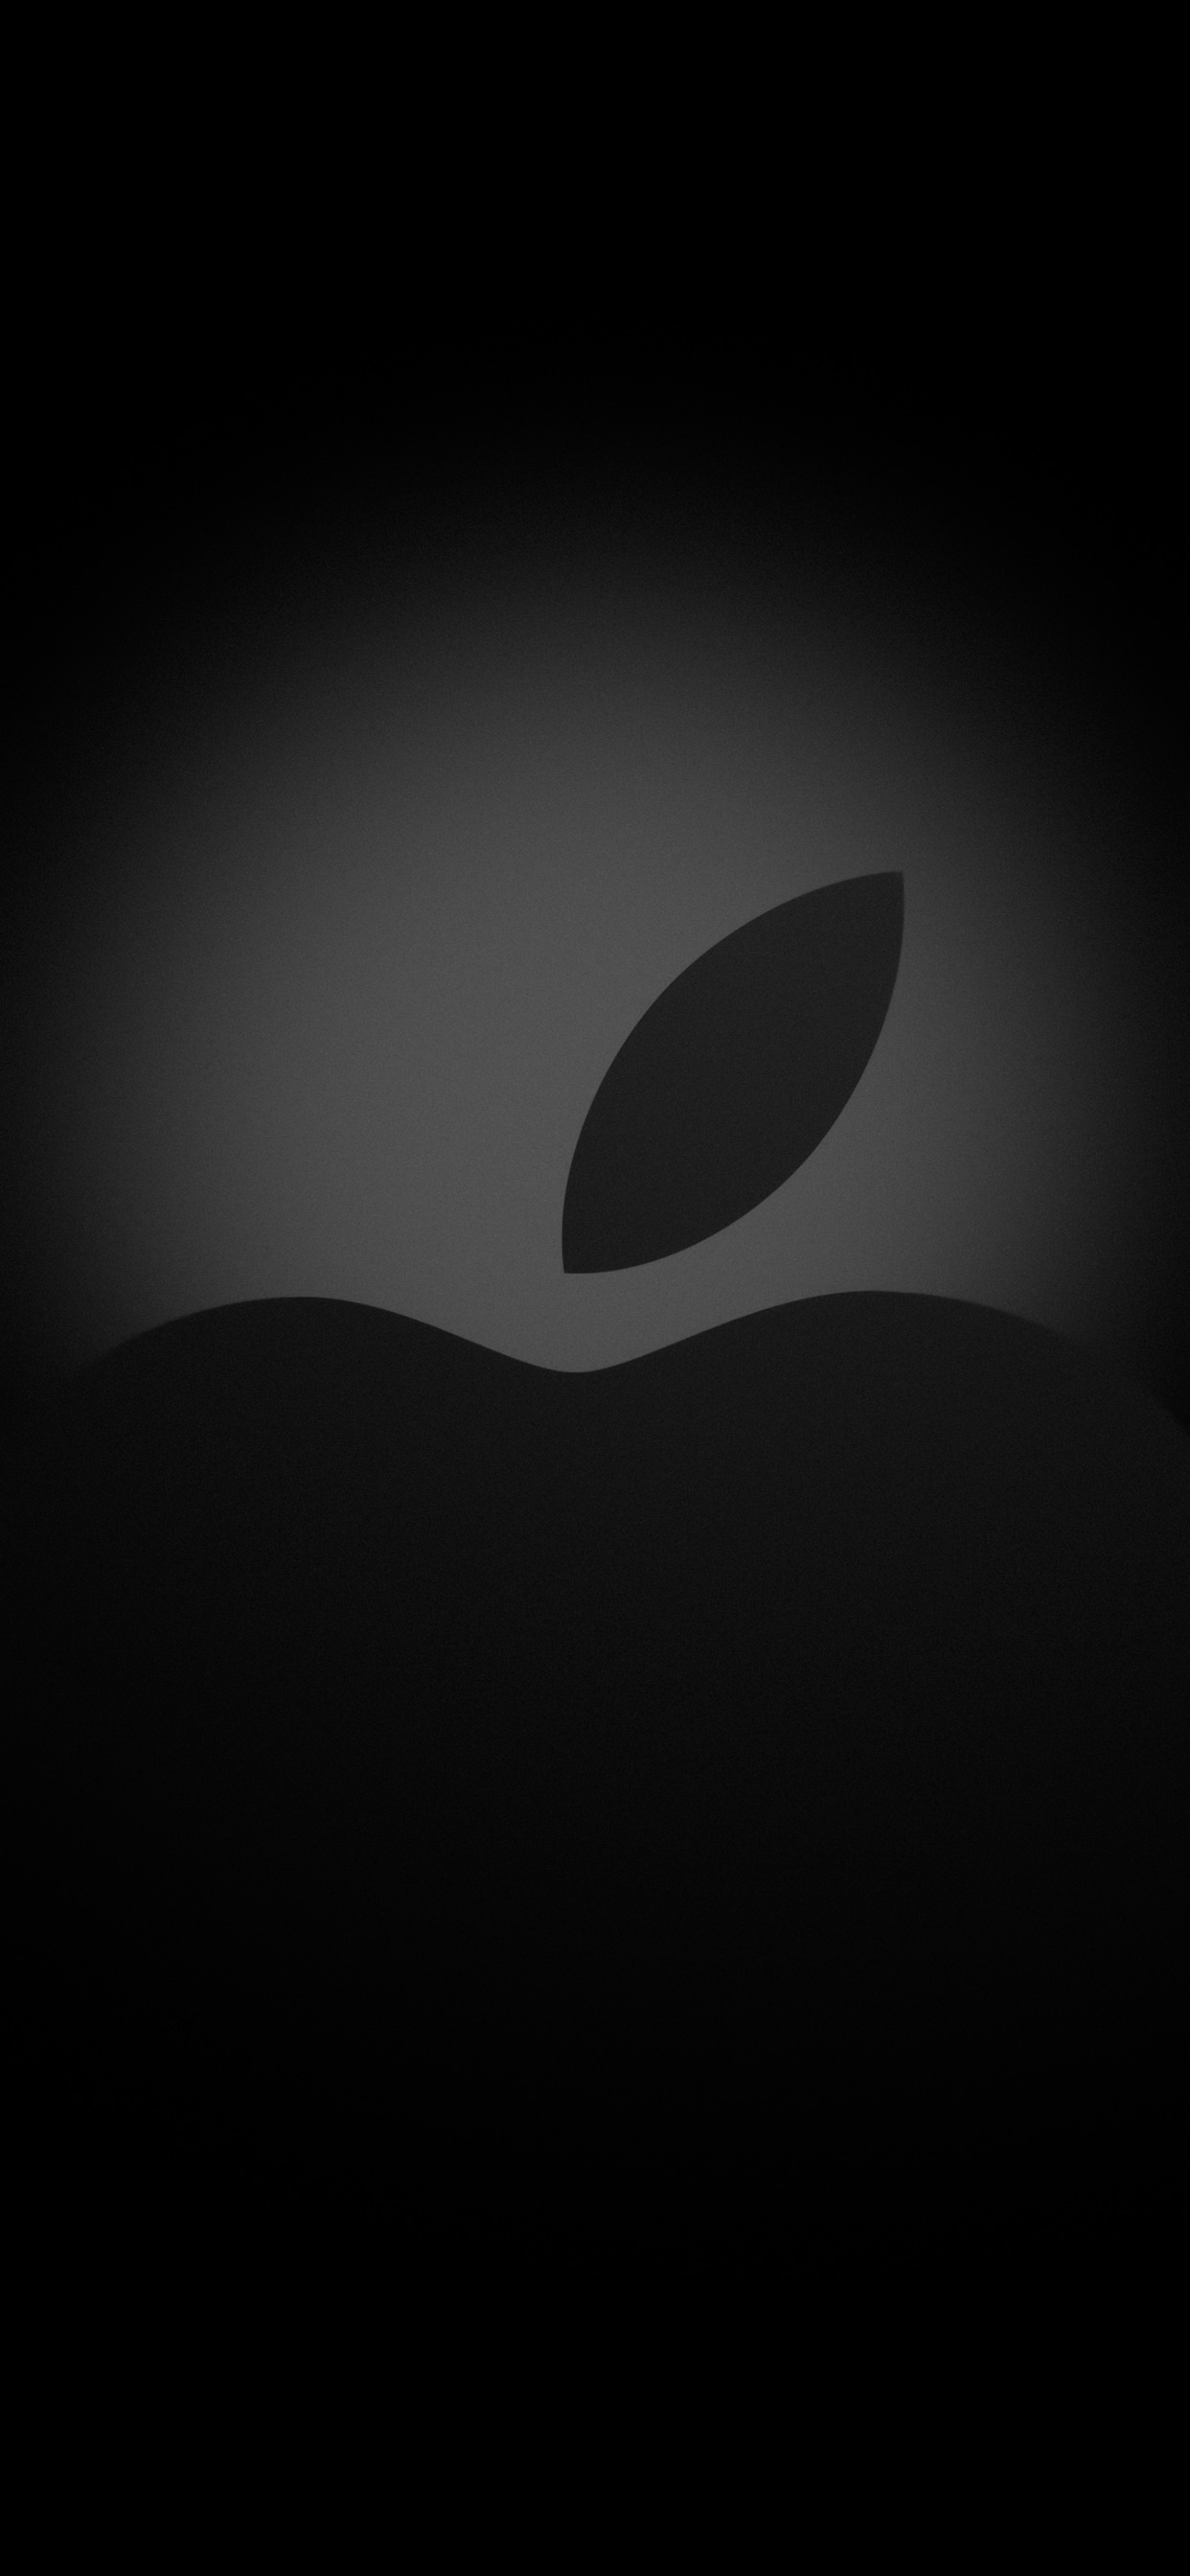 iPhone wallpaper apple event march 2019 v1 Fonds d'écran iPhone du 12/03/2019